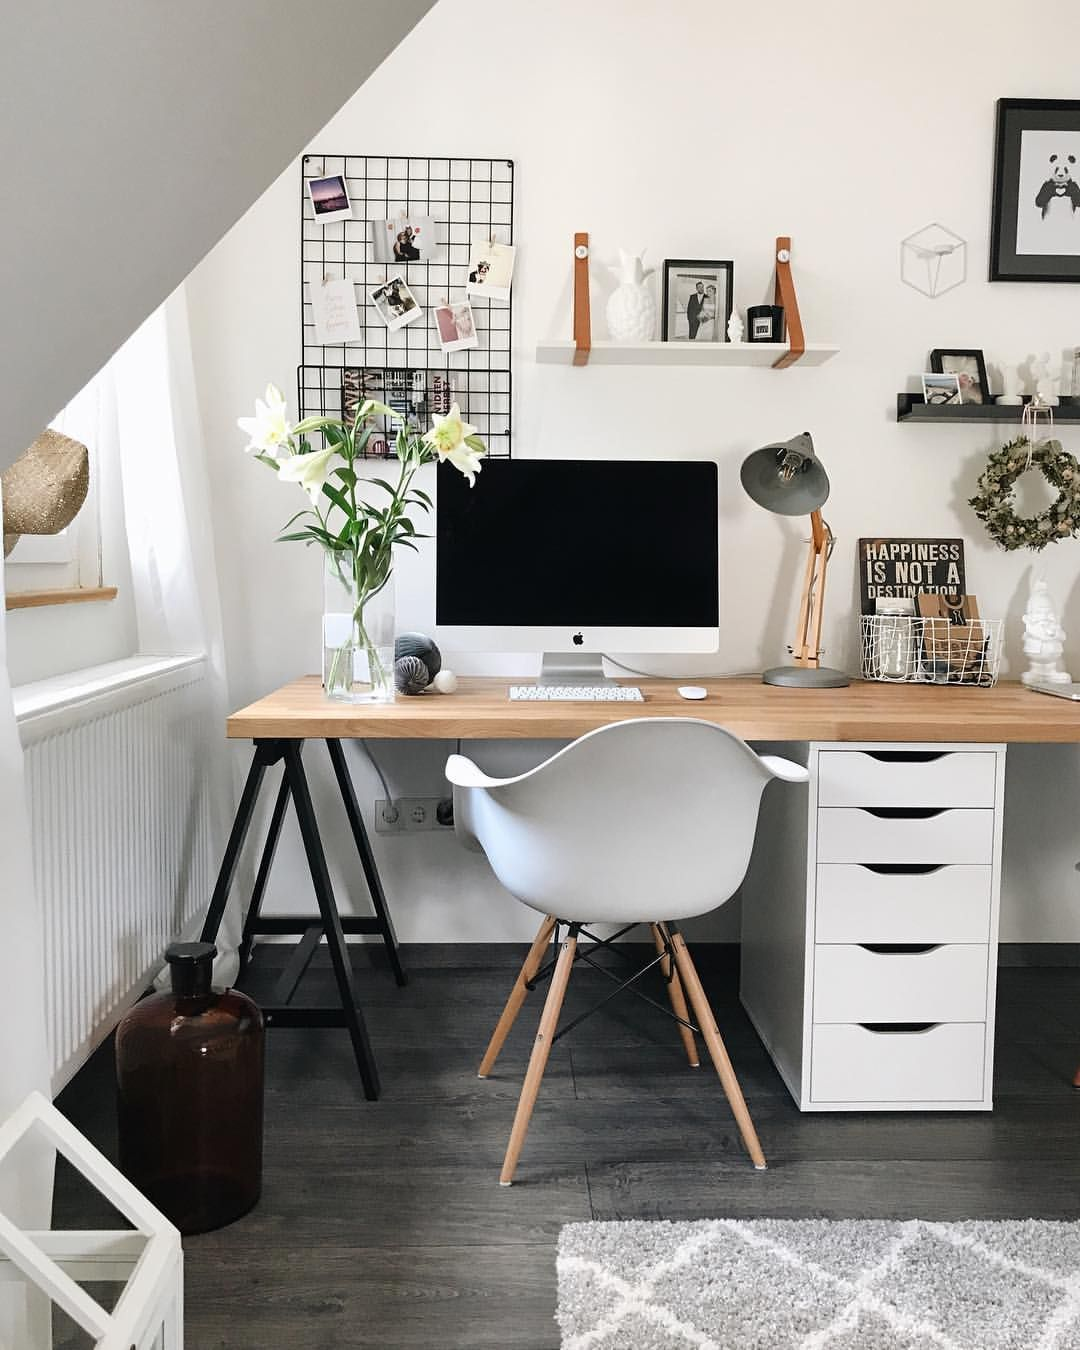 Home Office Urlaubsanspruch Pin By Karen Wilson On Craft Sewing And Work Areas In 2019